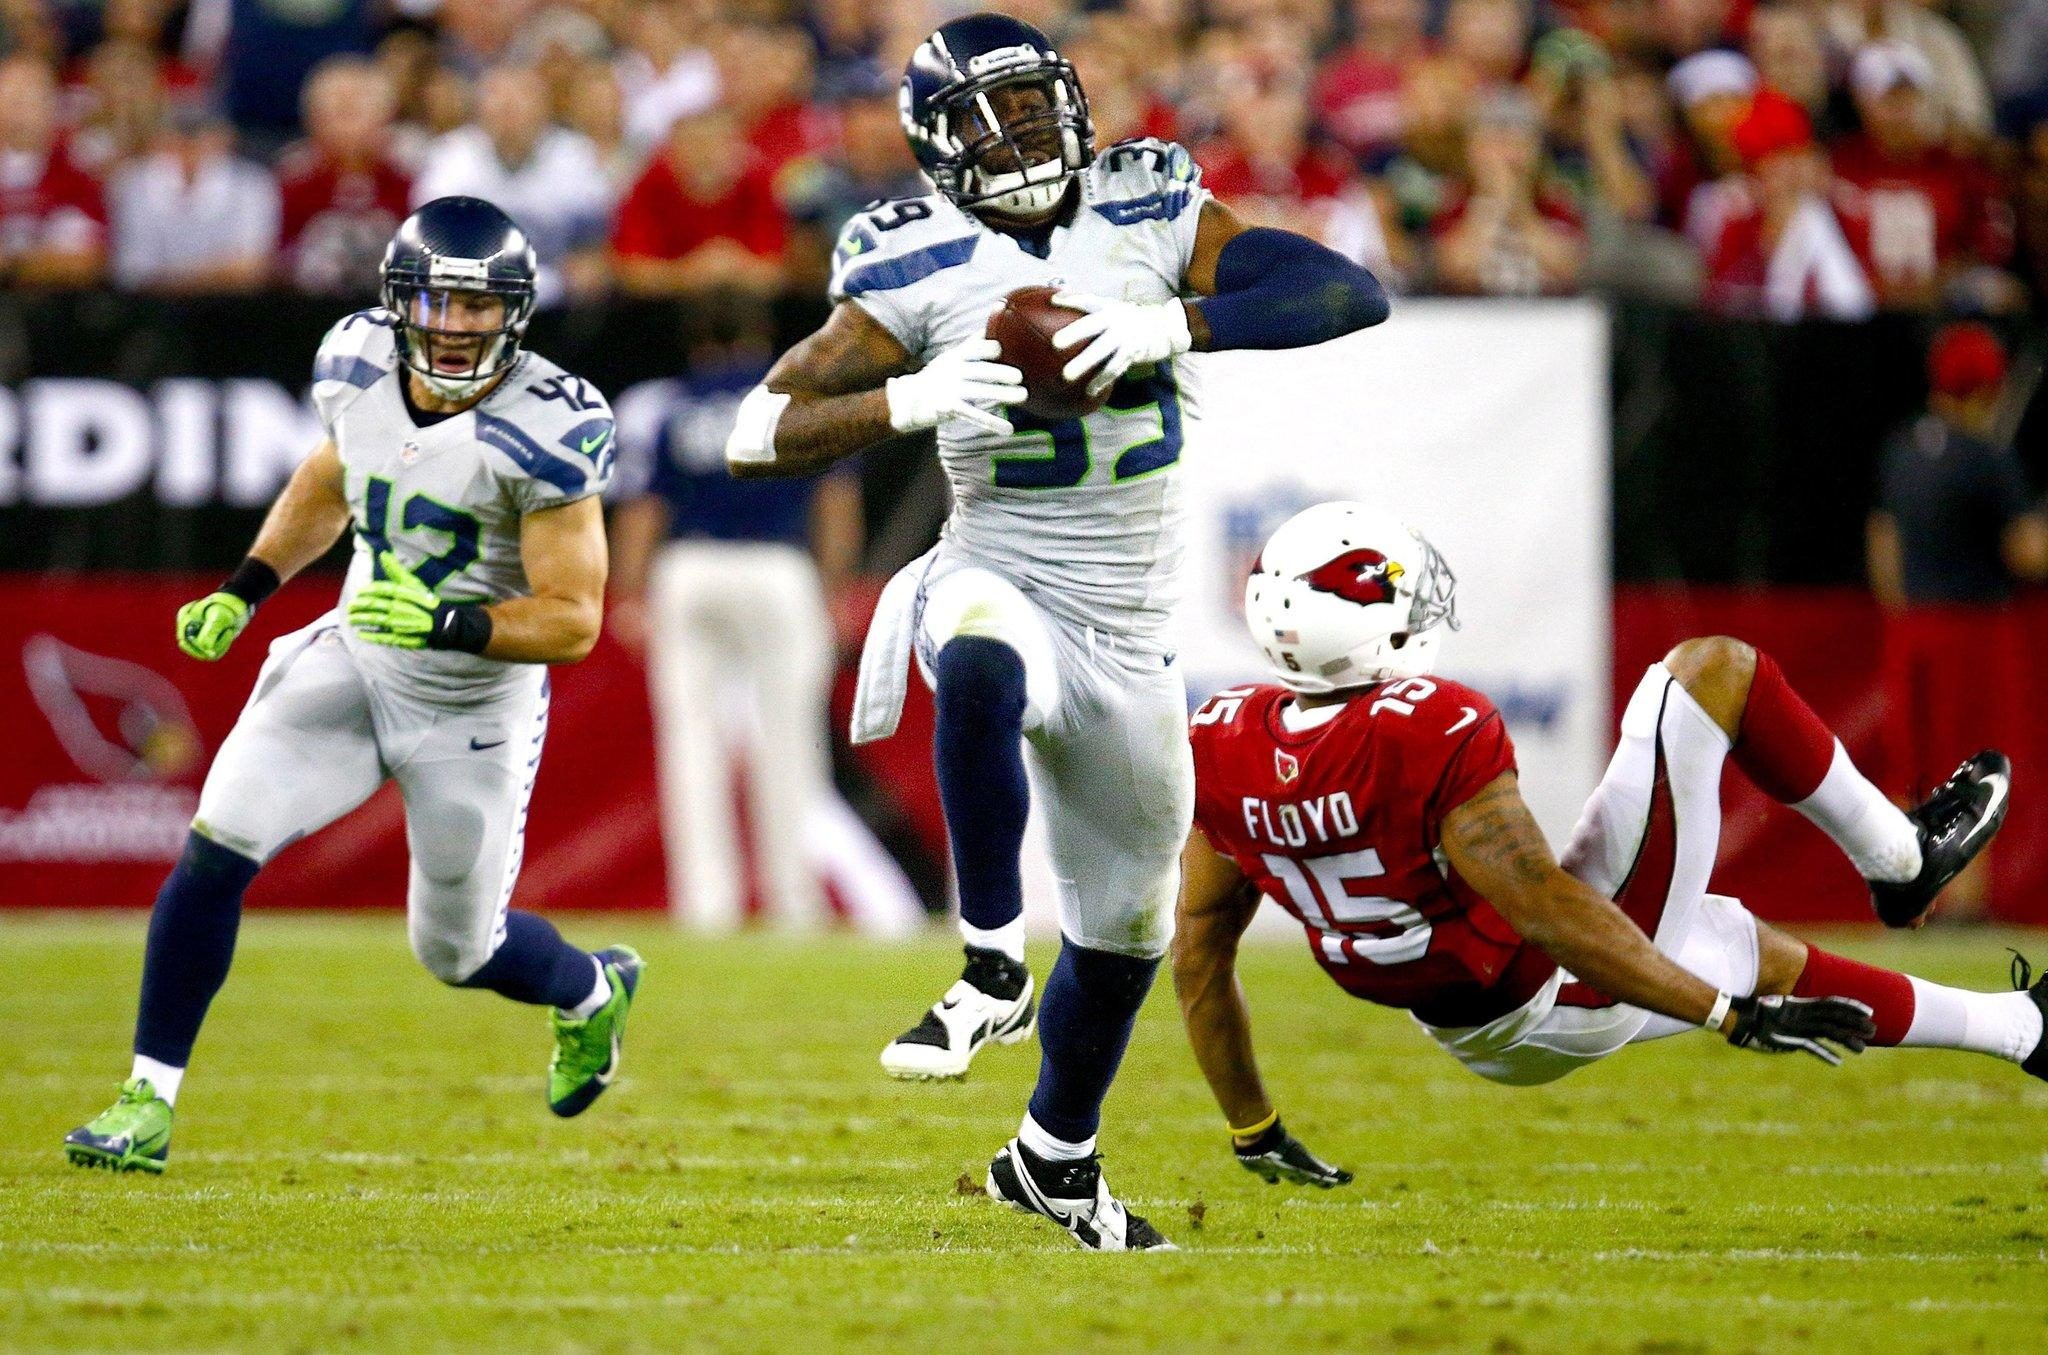 Seahawks cornerback Brandon Browner picks off a pass intended for Arizona Cardinals wide receiver Michael Floyd.